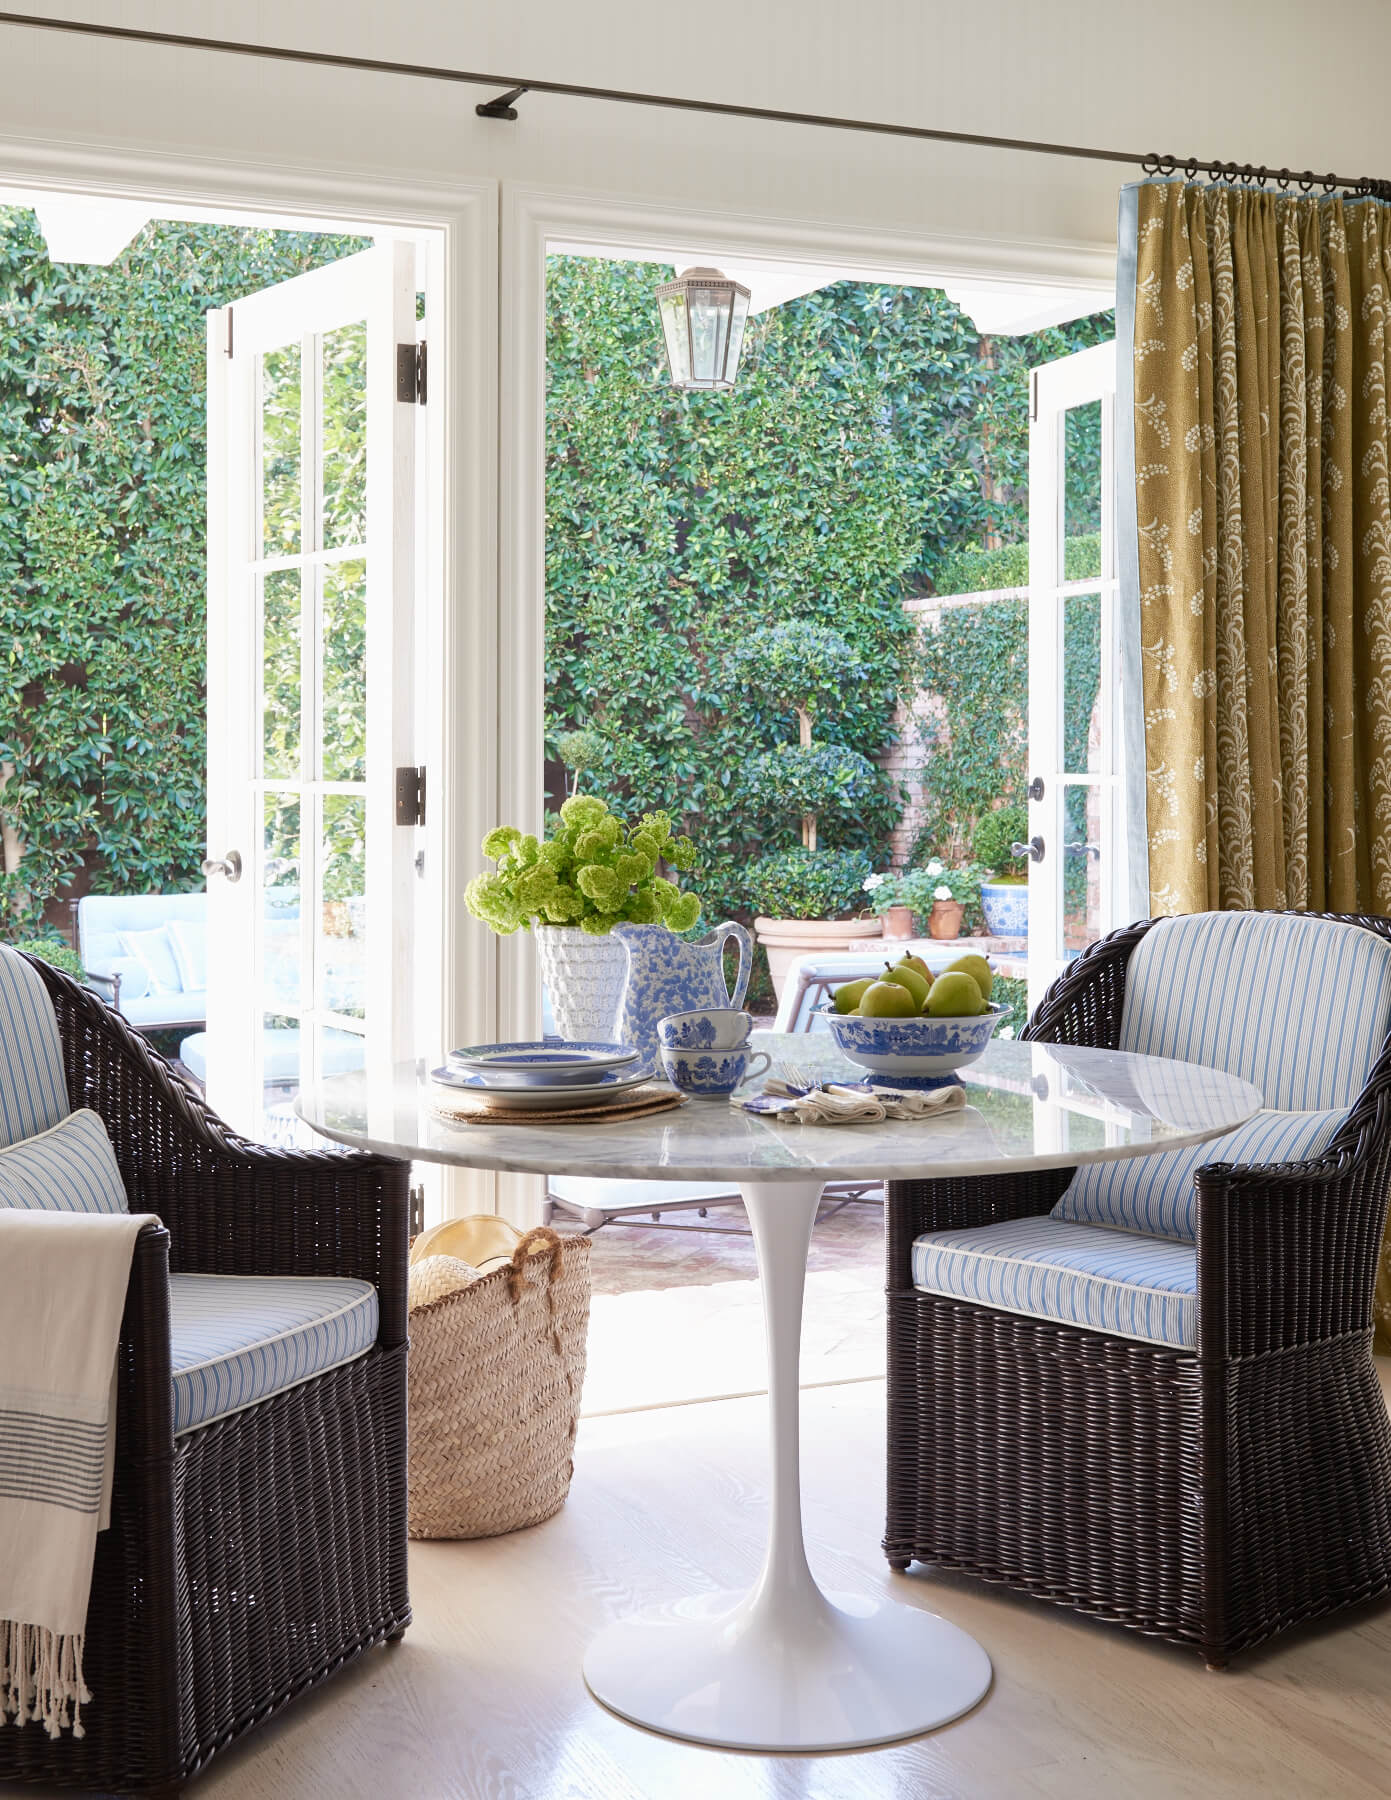 Kitchen upholstered seating with patterned drapes on iron rods and rings